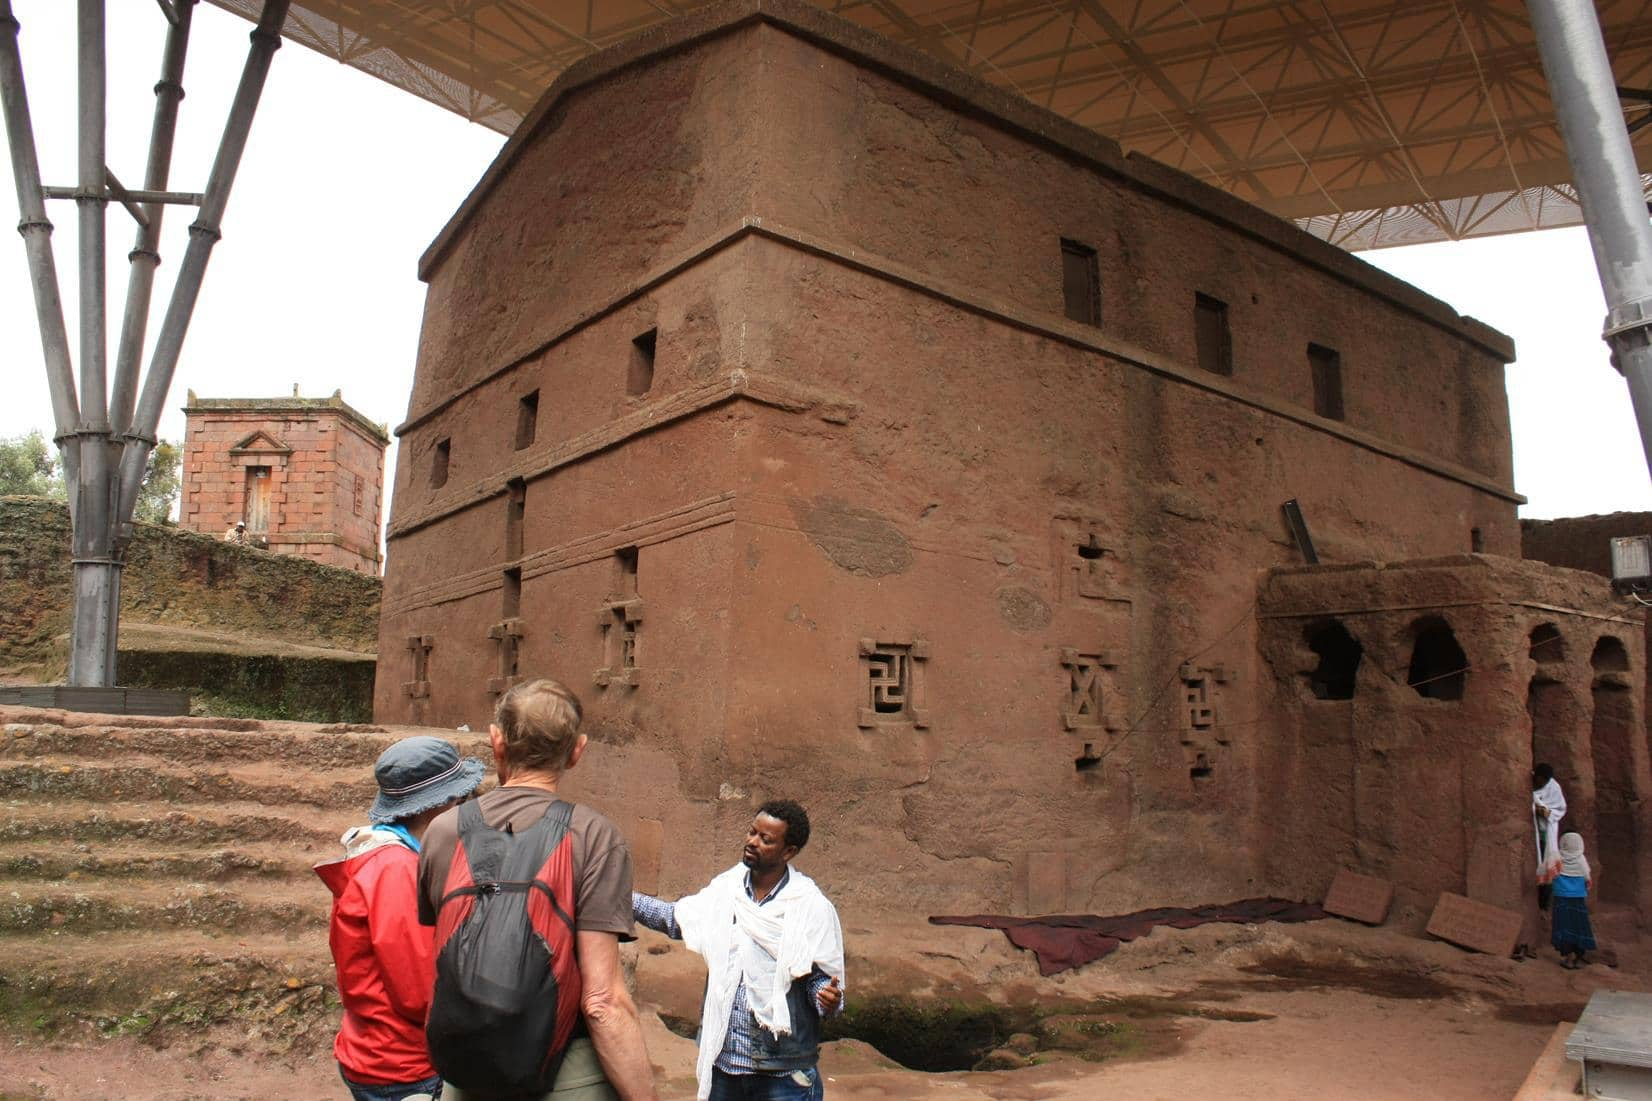 A guide explaining the architecture of one of the Lalibela churches.